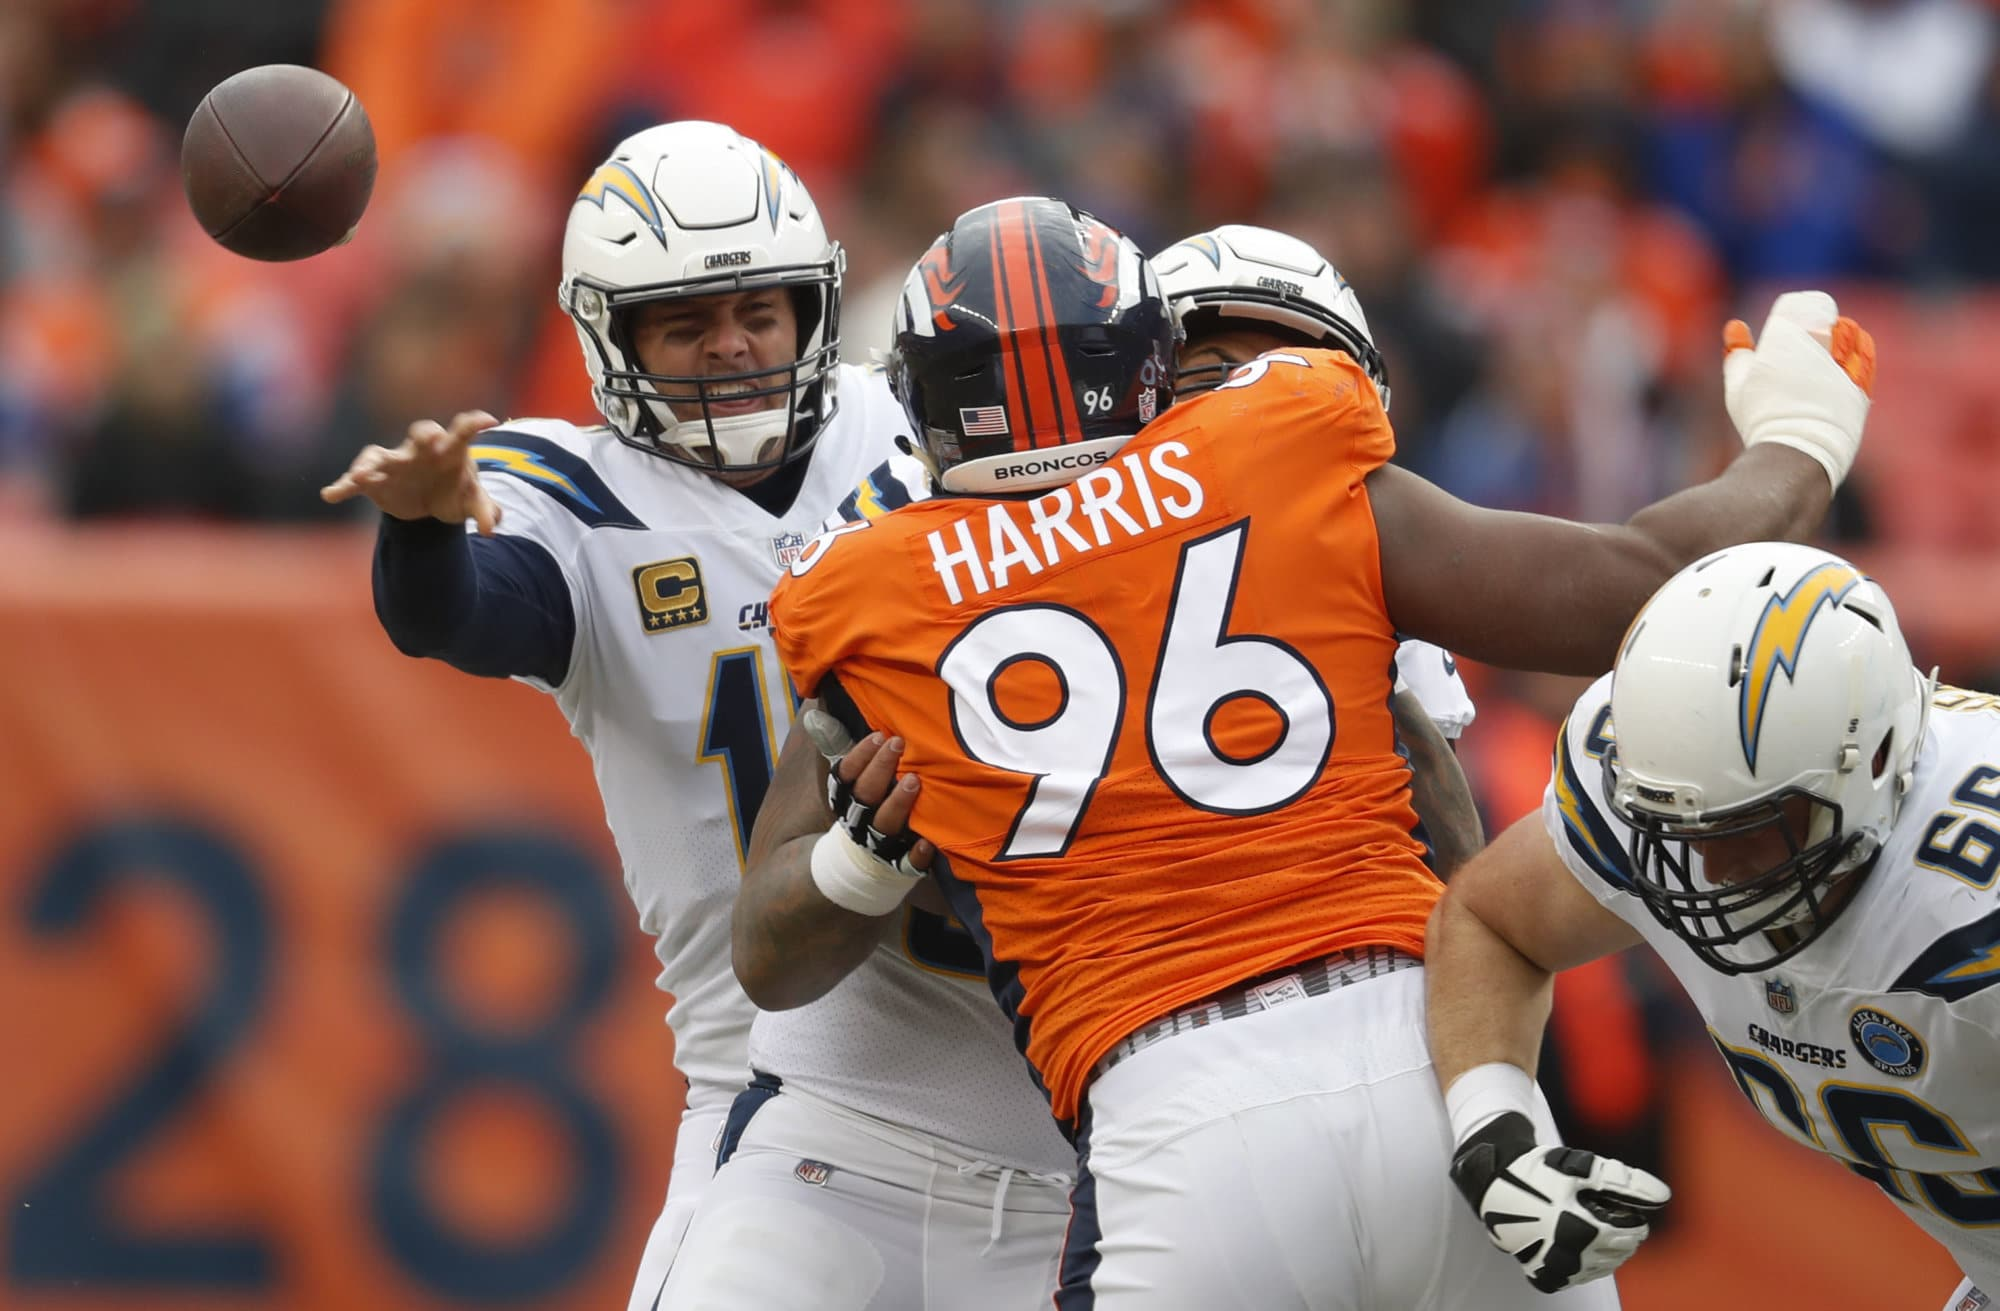 Los Angeles Chargers quarterback Philip Rivers, left, throws a pass under pressure from Denver Broncos defensive end Shelby Harris (96) during the first half of an NFL football game, Sunday, Dec. 30, 2018, in Denver. (AP Photo/David Zalubowski)